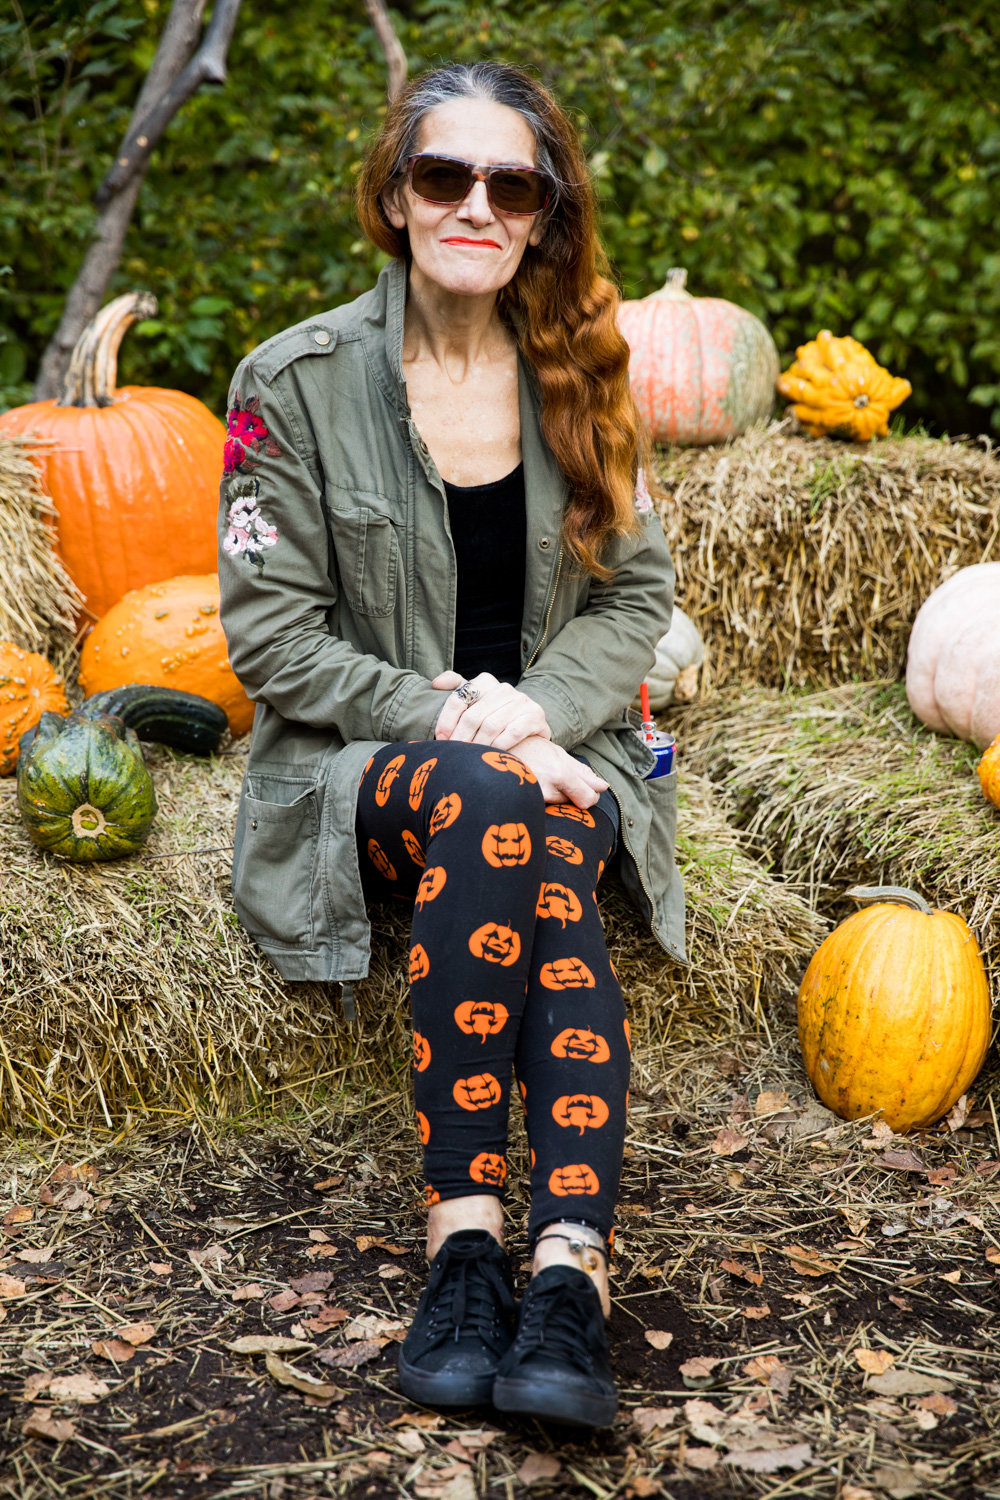 Irina Pilizota sits among multicolored gourds at the New York Botanical Garden. She makes a point to visit the Spooky Pumpkin Garden every year.